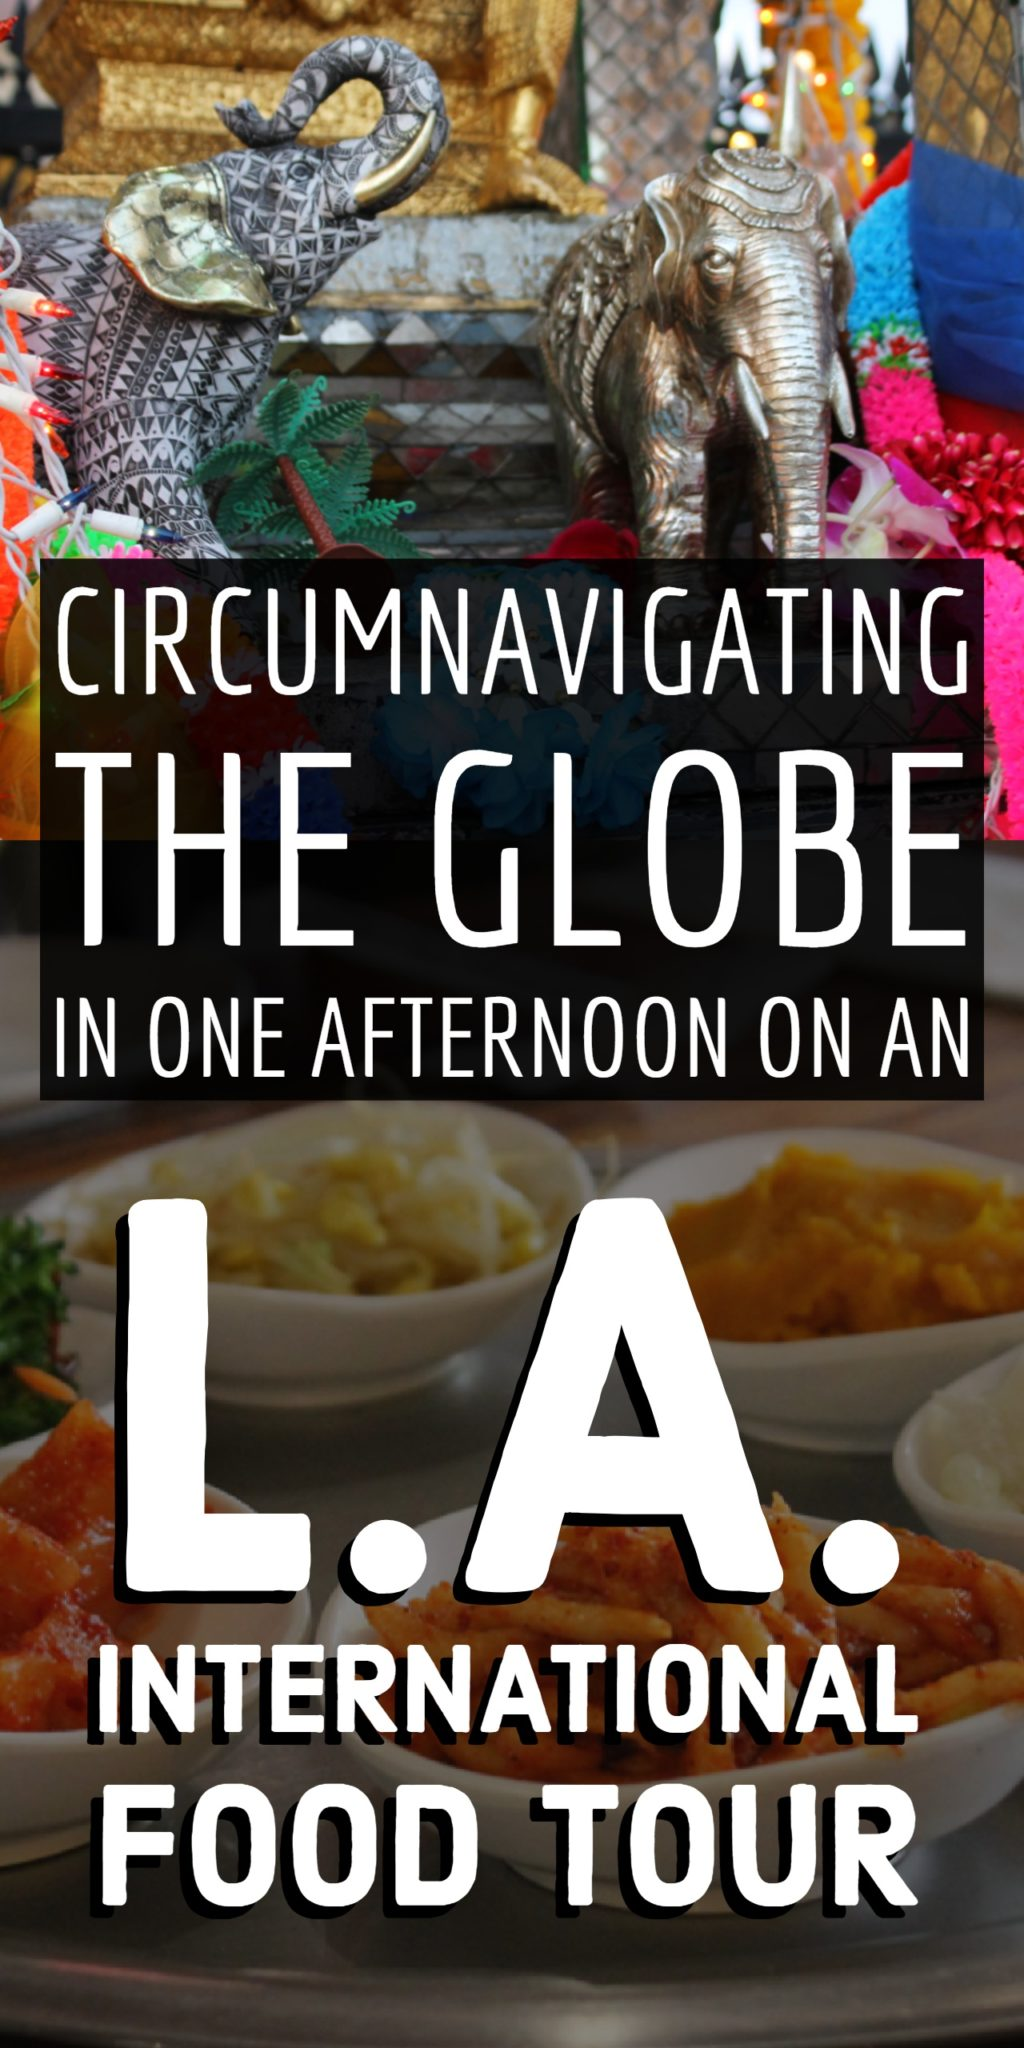 L.A. is a dream come true for the internationally curious. This Ethnic Food & Neighborhoods Tour showcased a side of Los Angeles few tourists or residents ever get to see